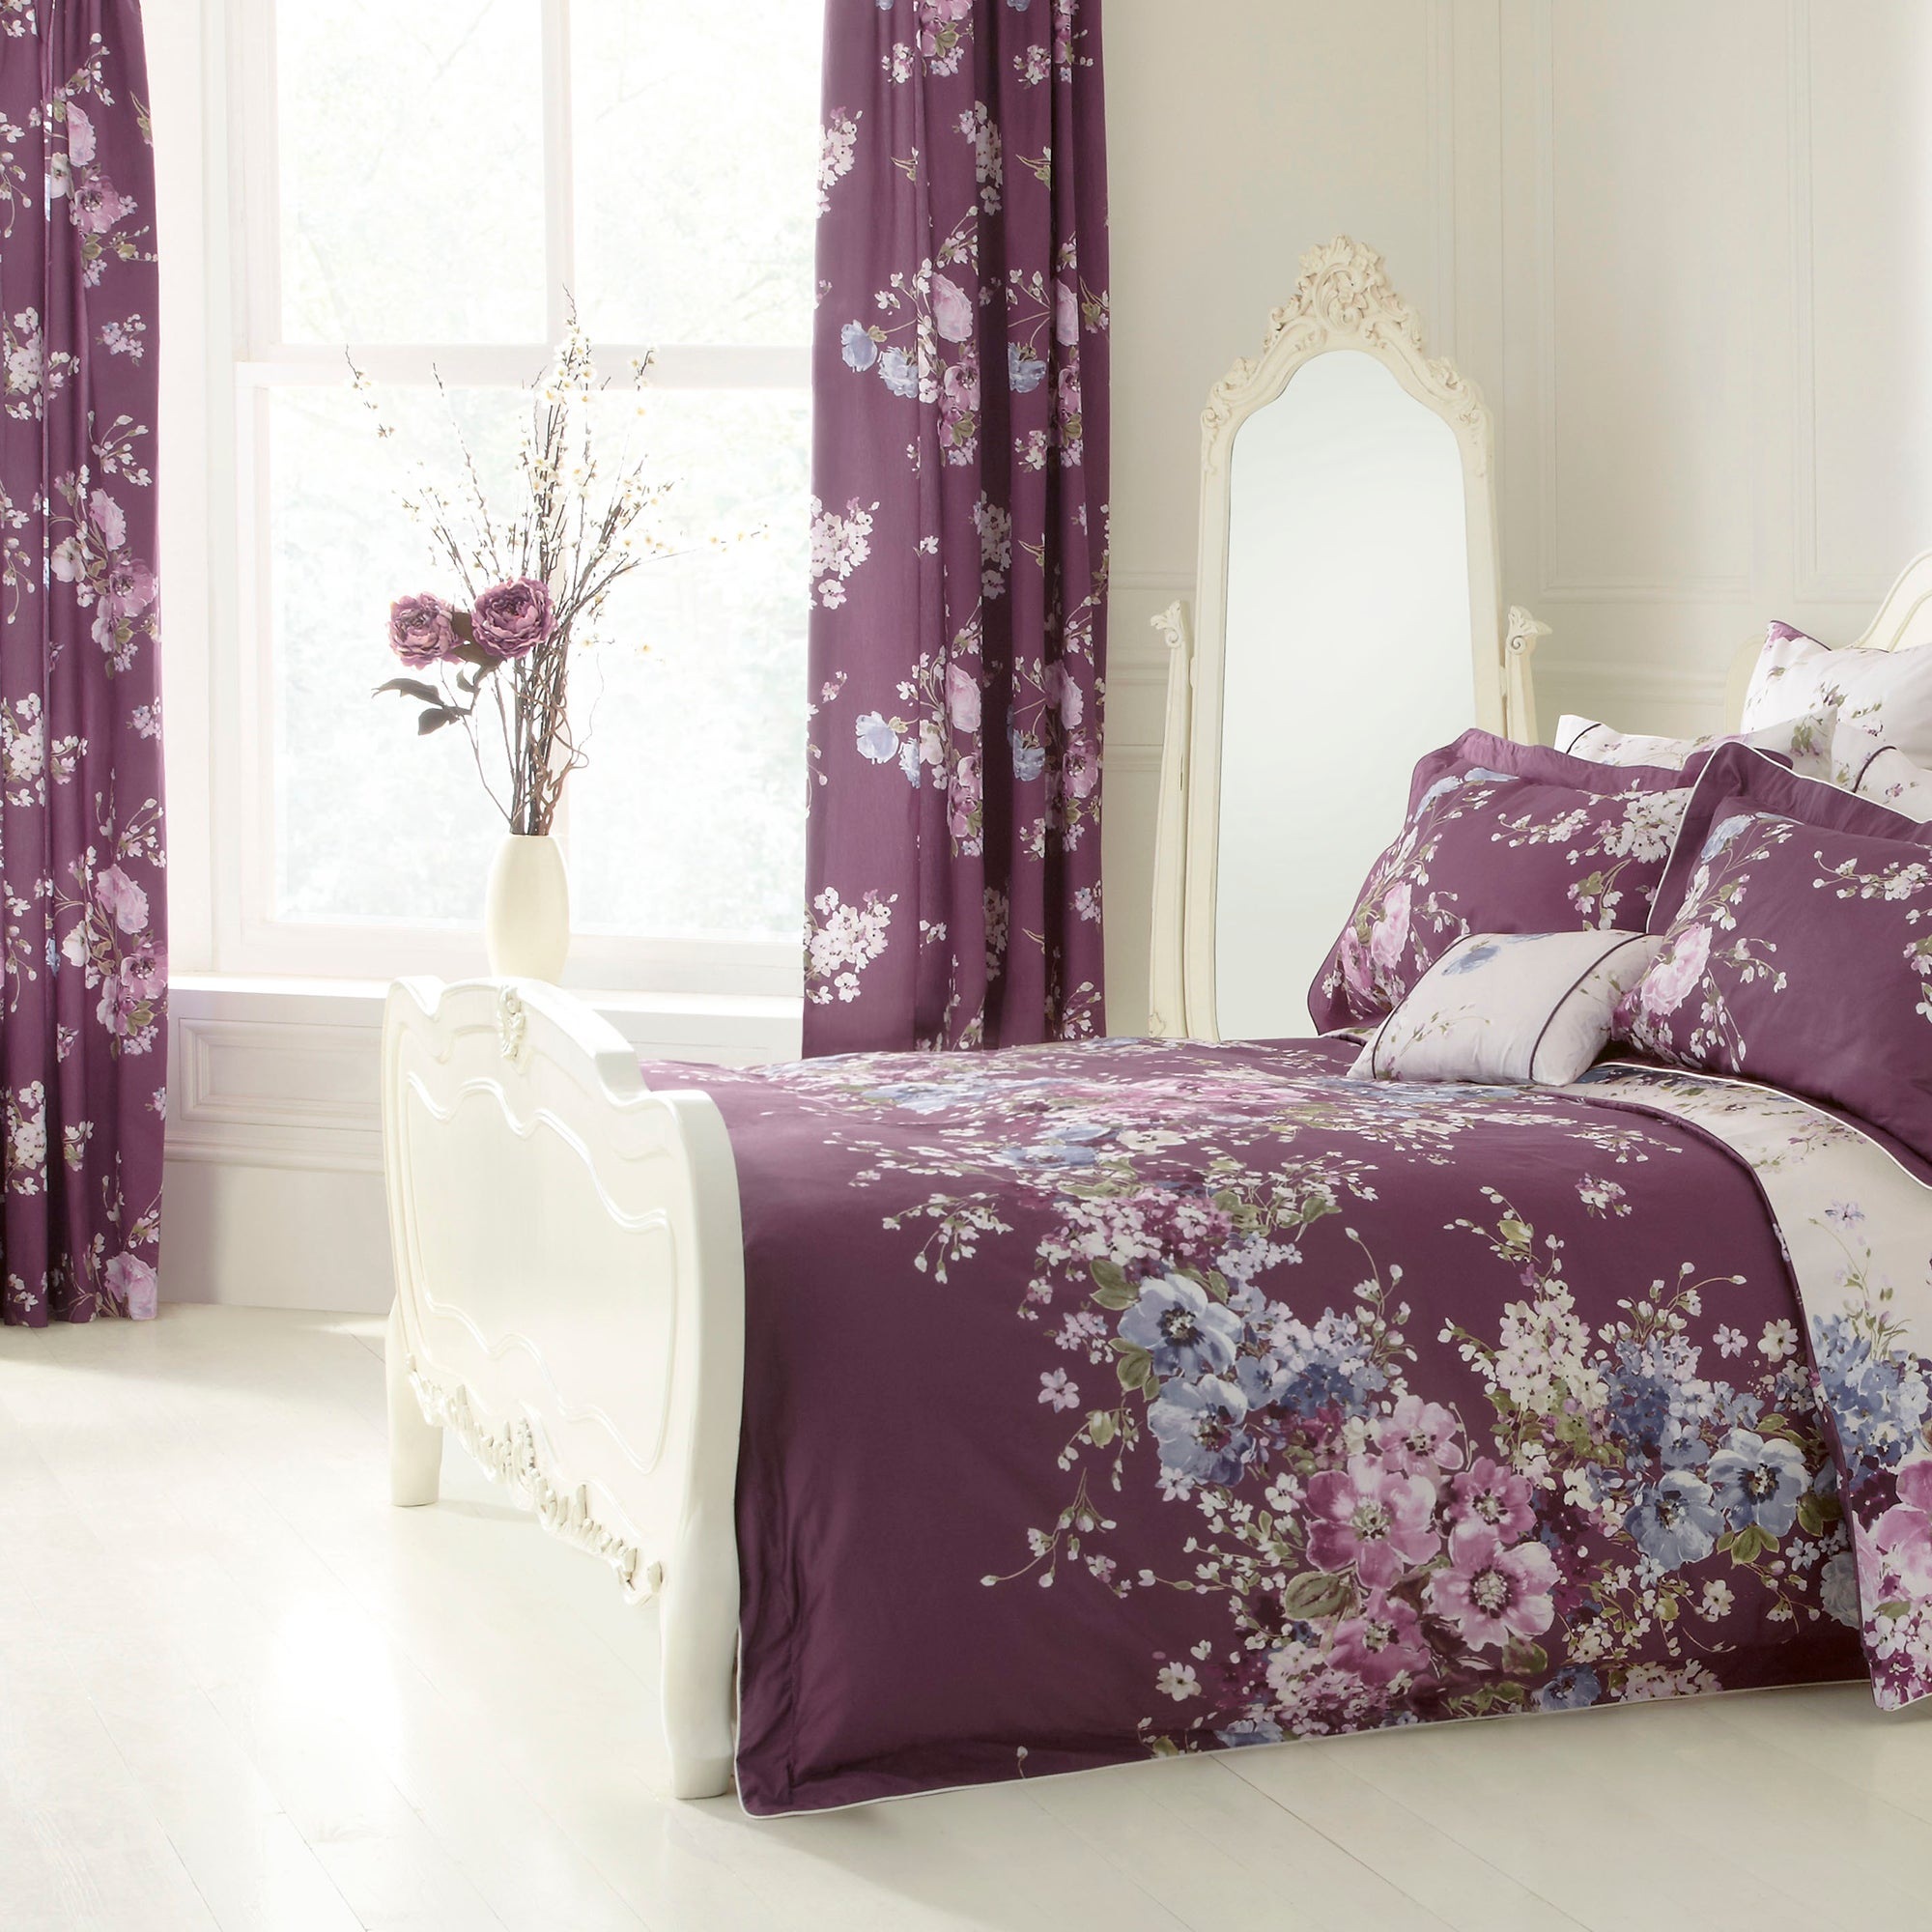 Dorma Purple Florence Lined Pencil Pleat Curtains